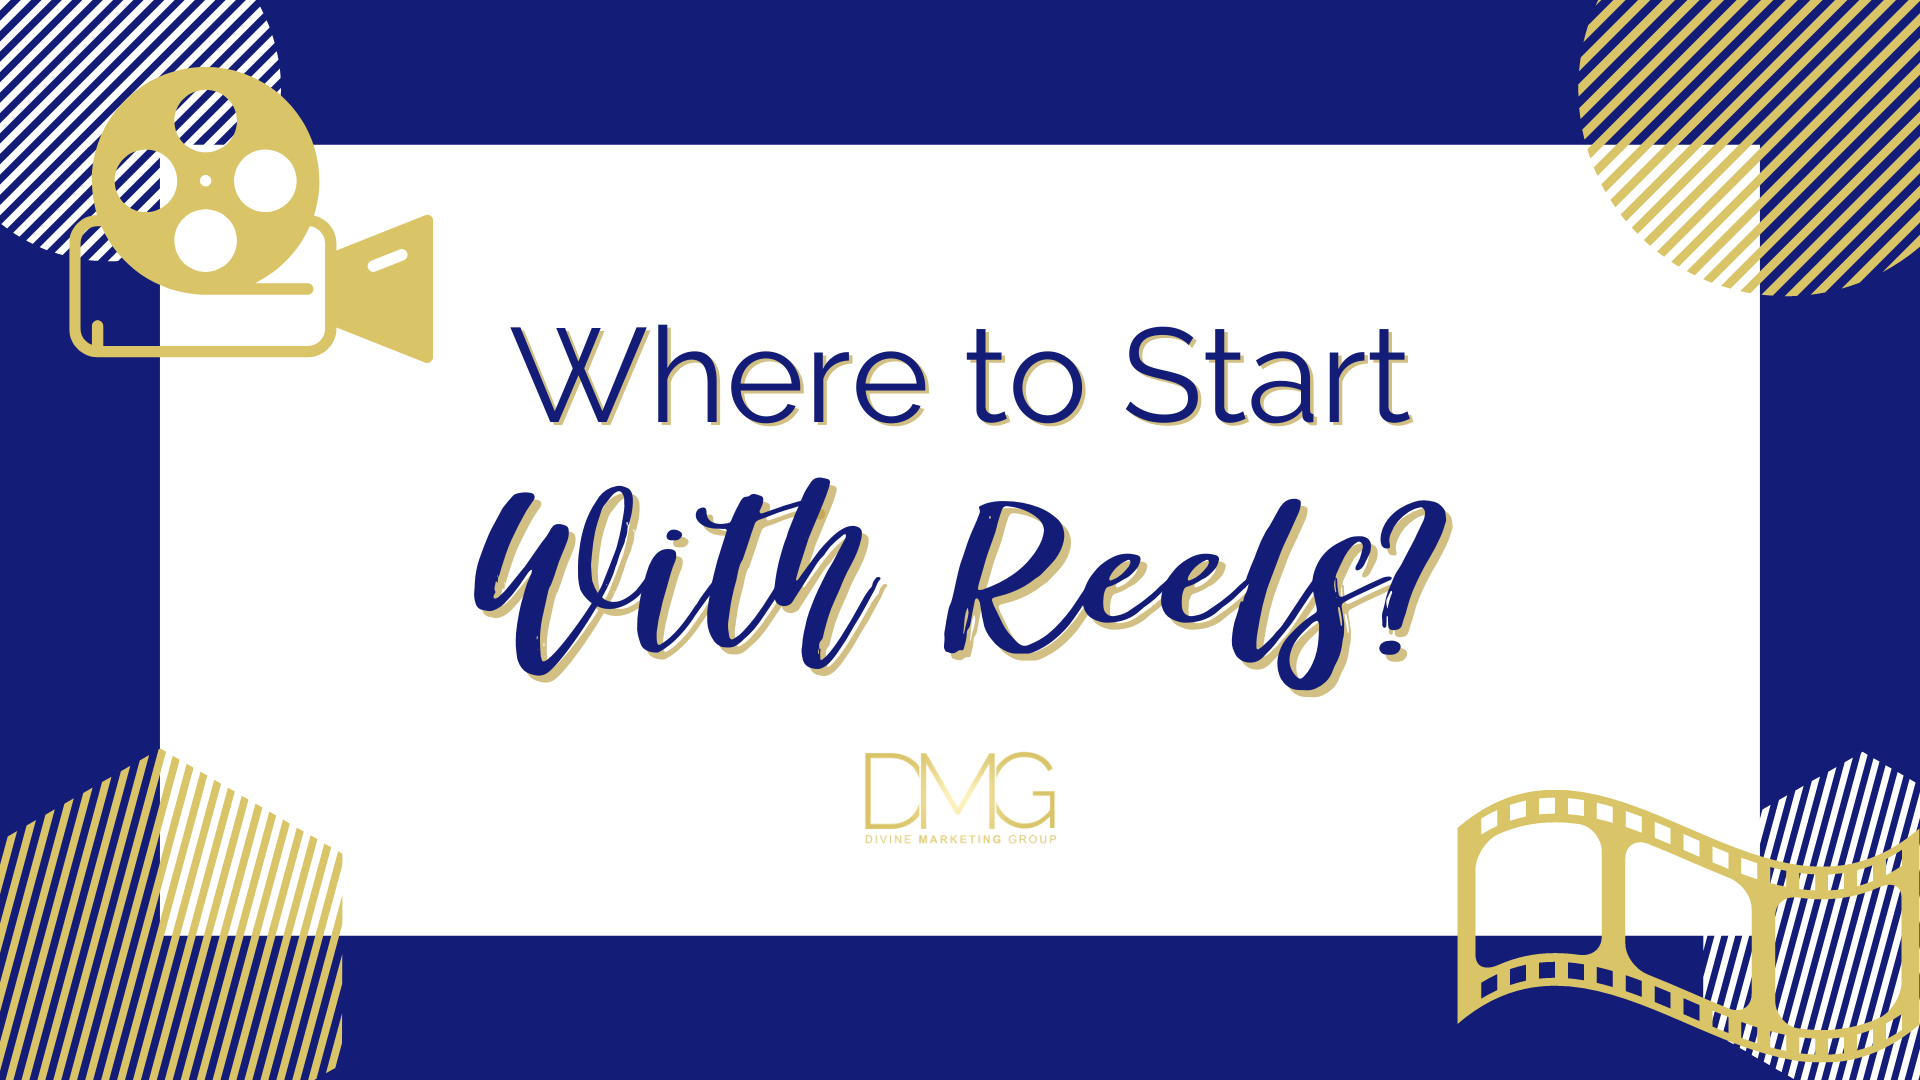 Where to Start with Reels